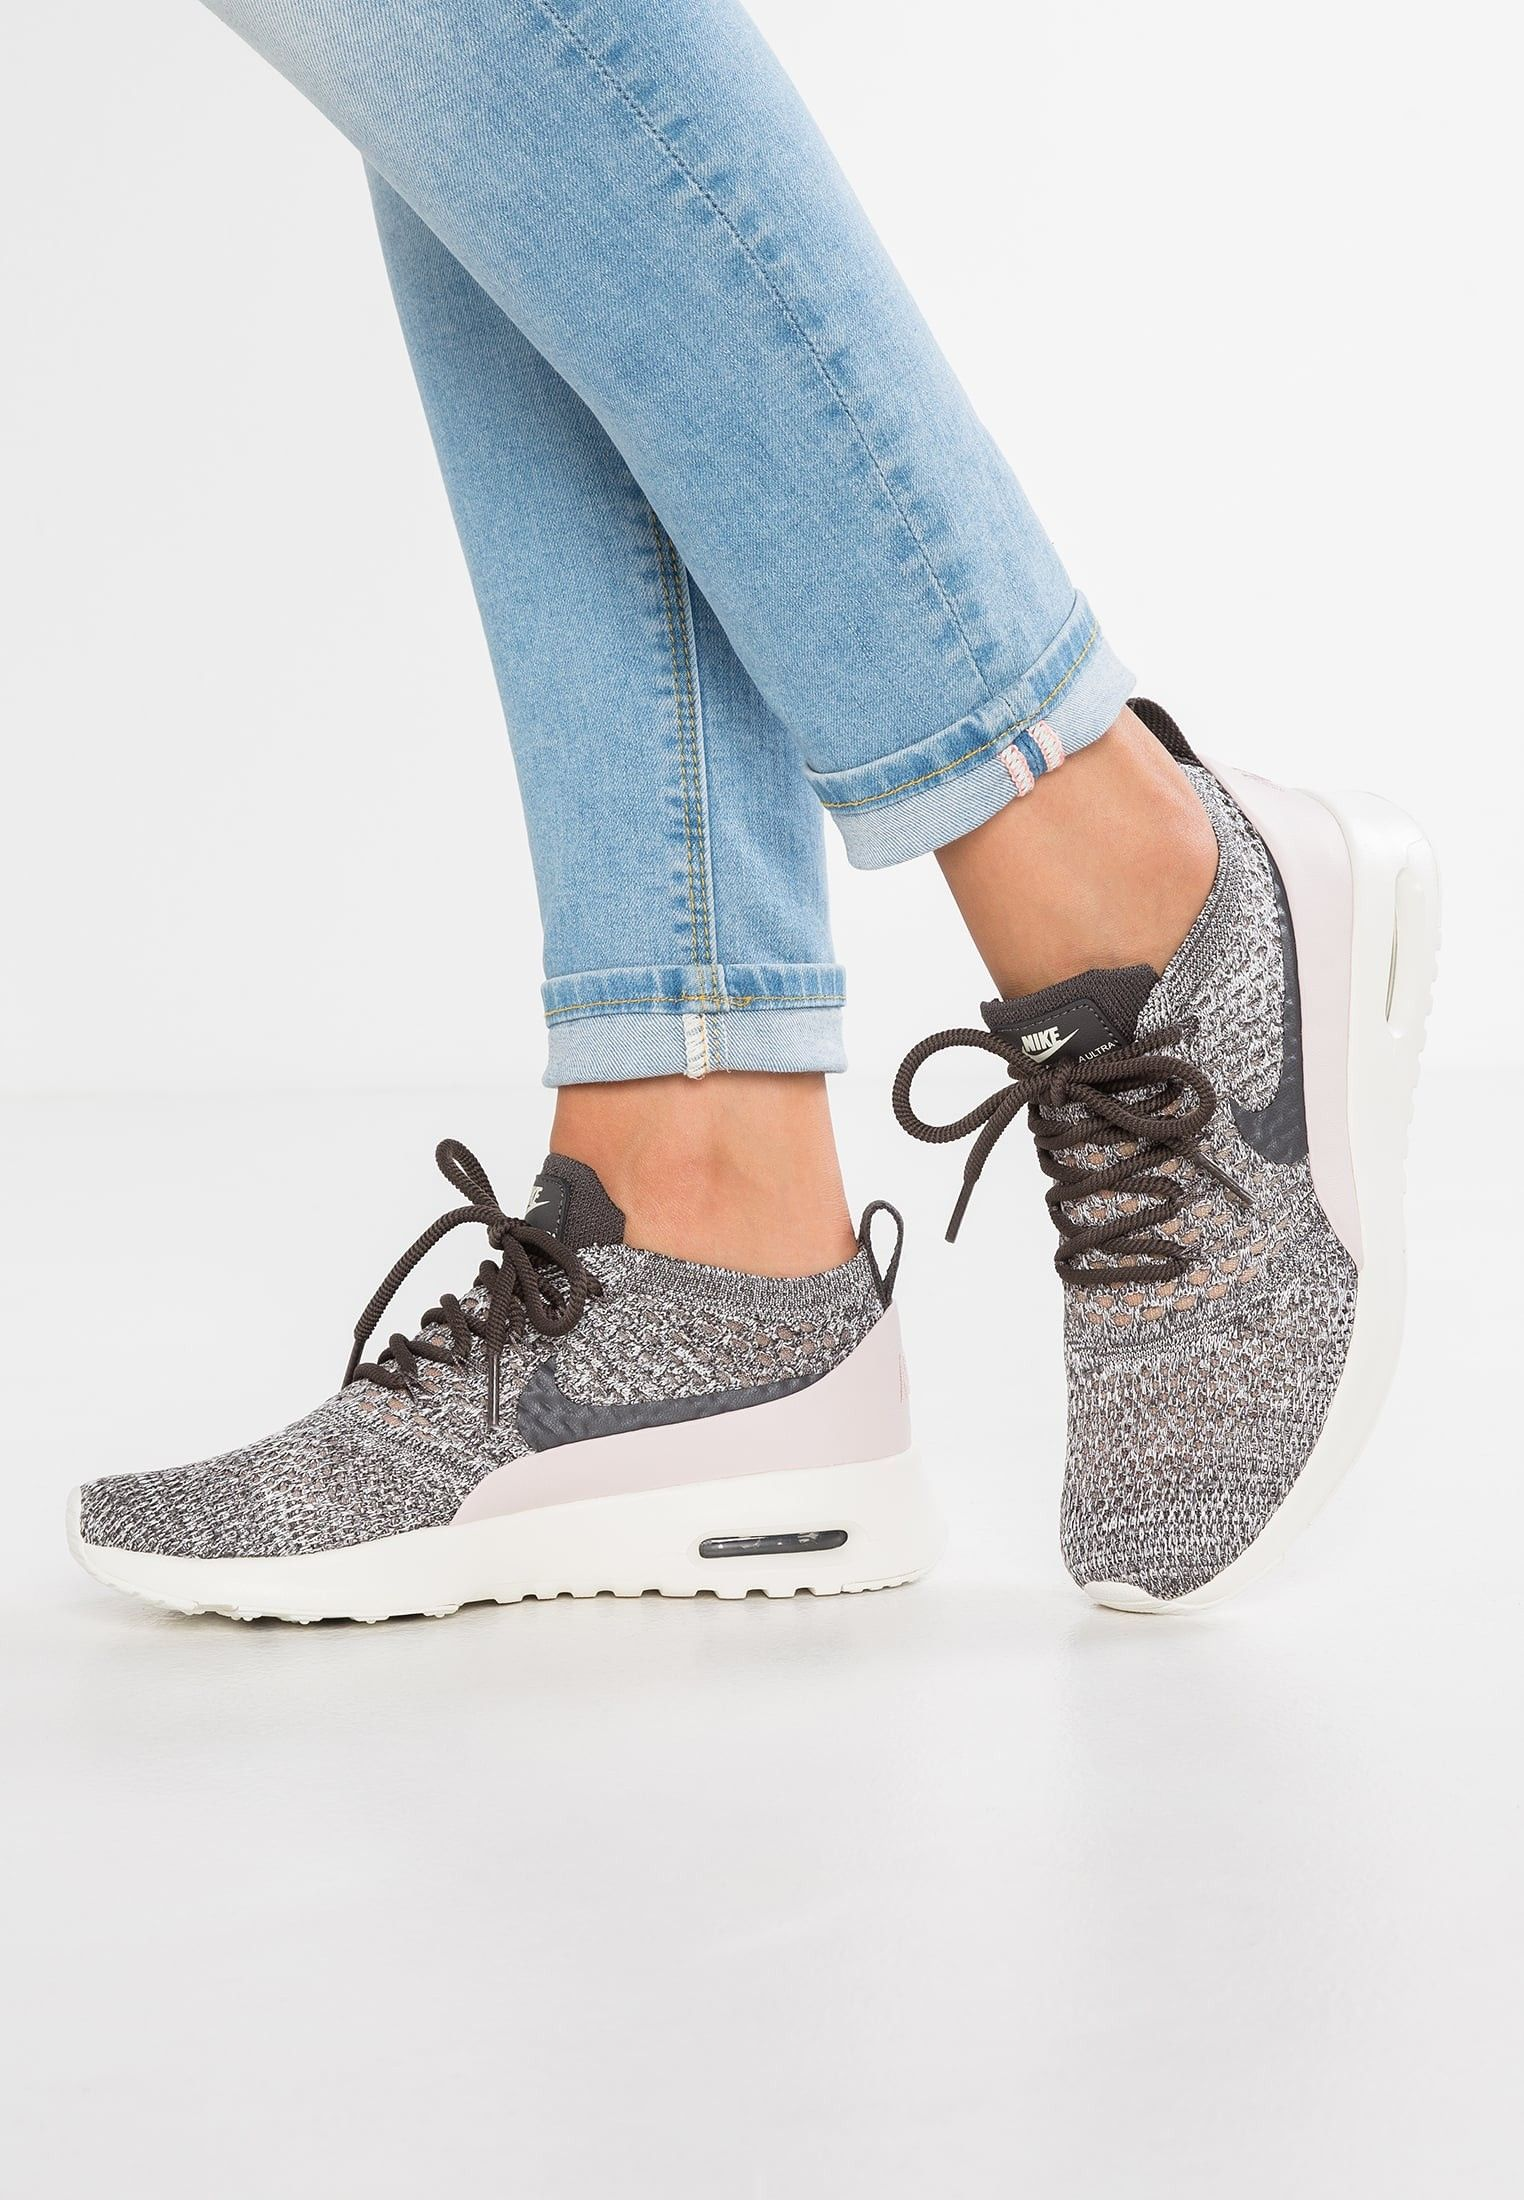 7a6437f42367f Pin by Kelley R. Brownlow on Nike Sneakers Black Friday Sale ...